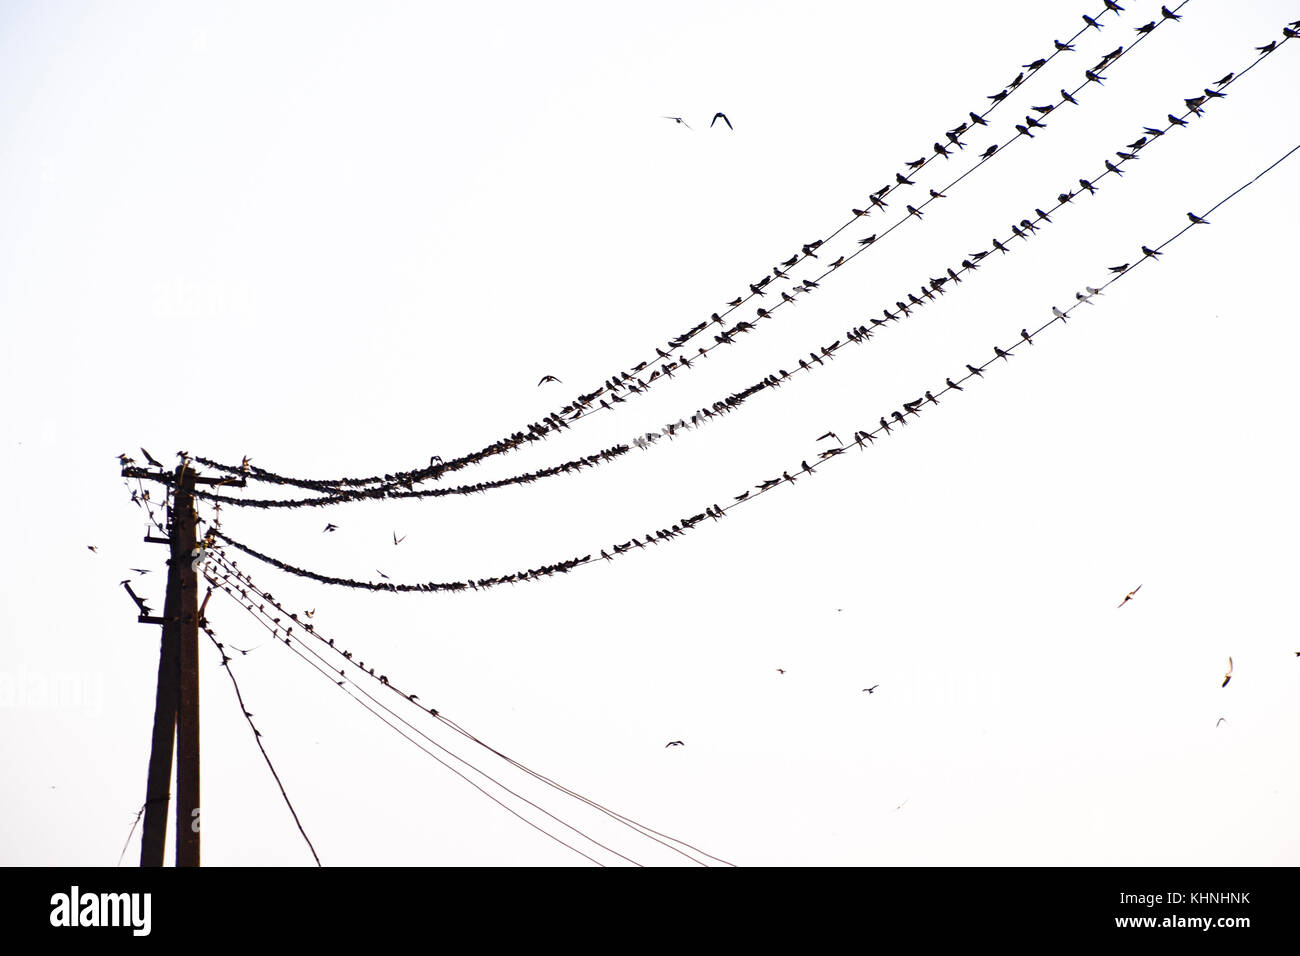 Swallows On Telephone Line Stock Photos & Swallows On Telephone Line ...